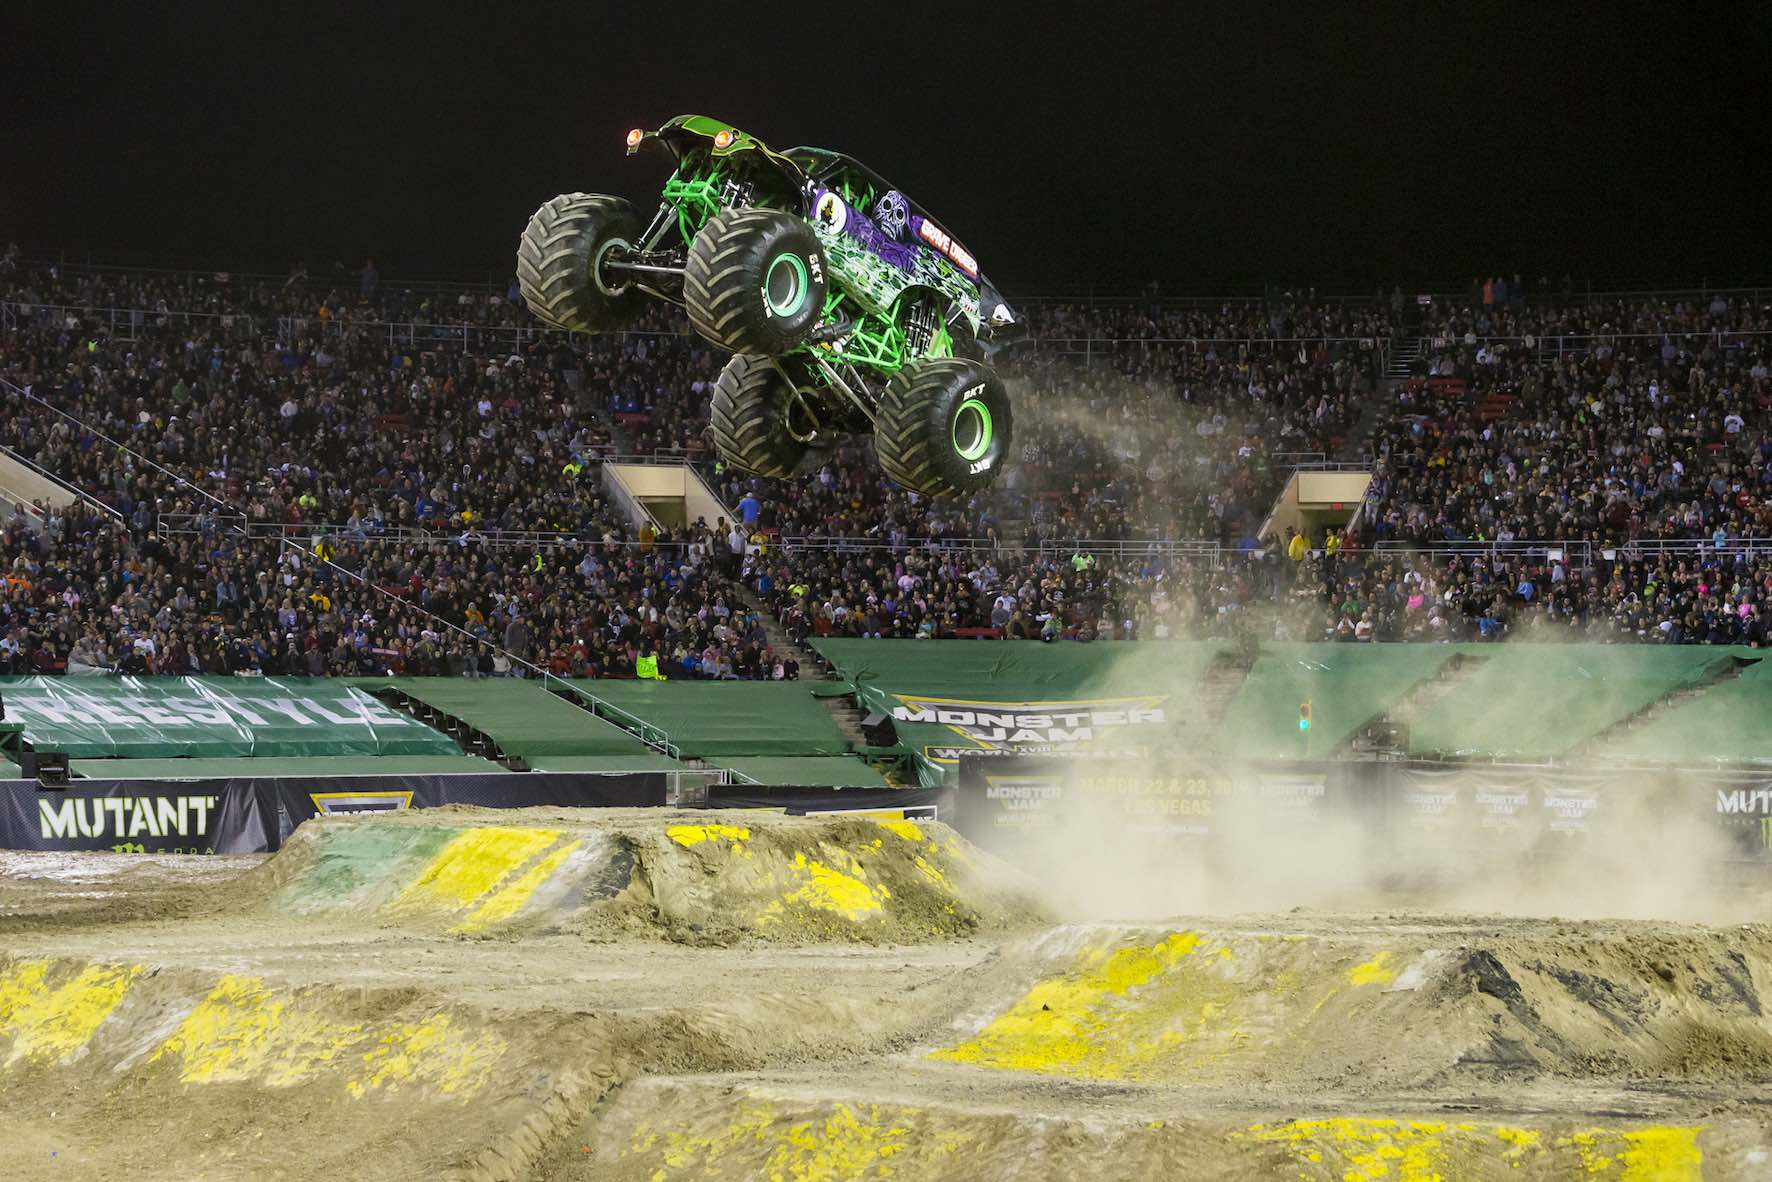 The Grave Digger Monster Truck is set to perform at Monster Jam in South Africa